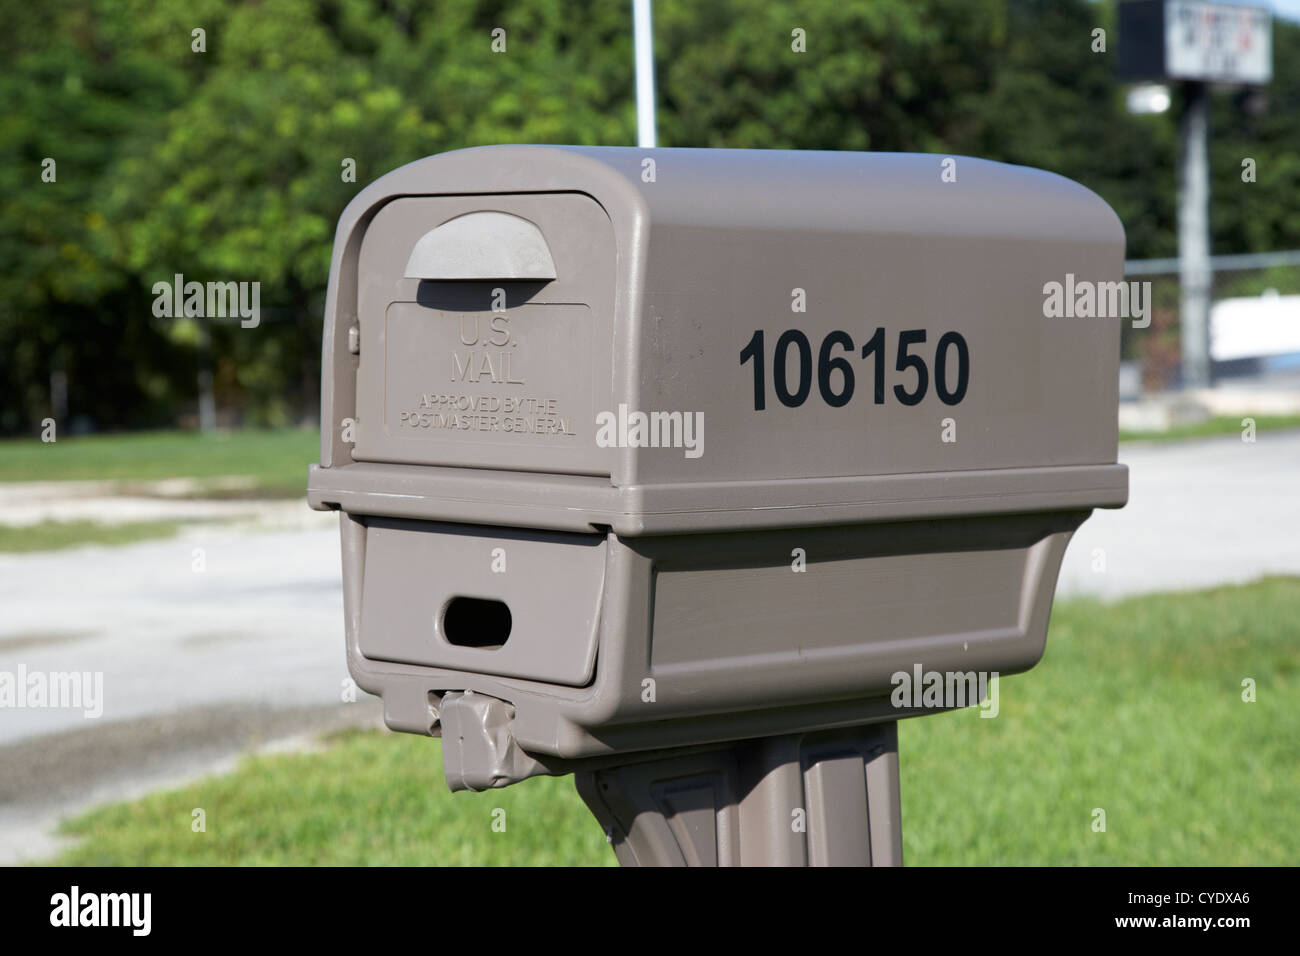 cheap plastic u.s. mail double mailbox usa - Stock Image